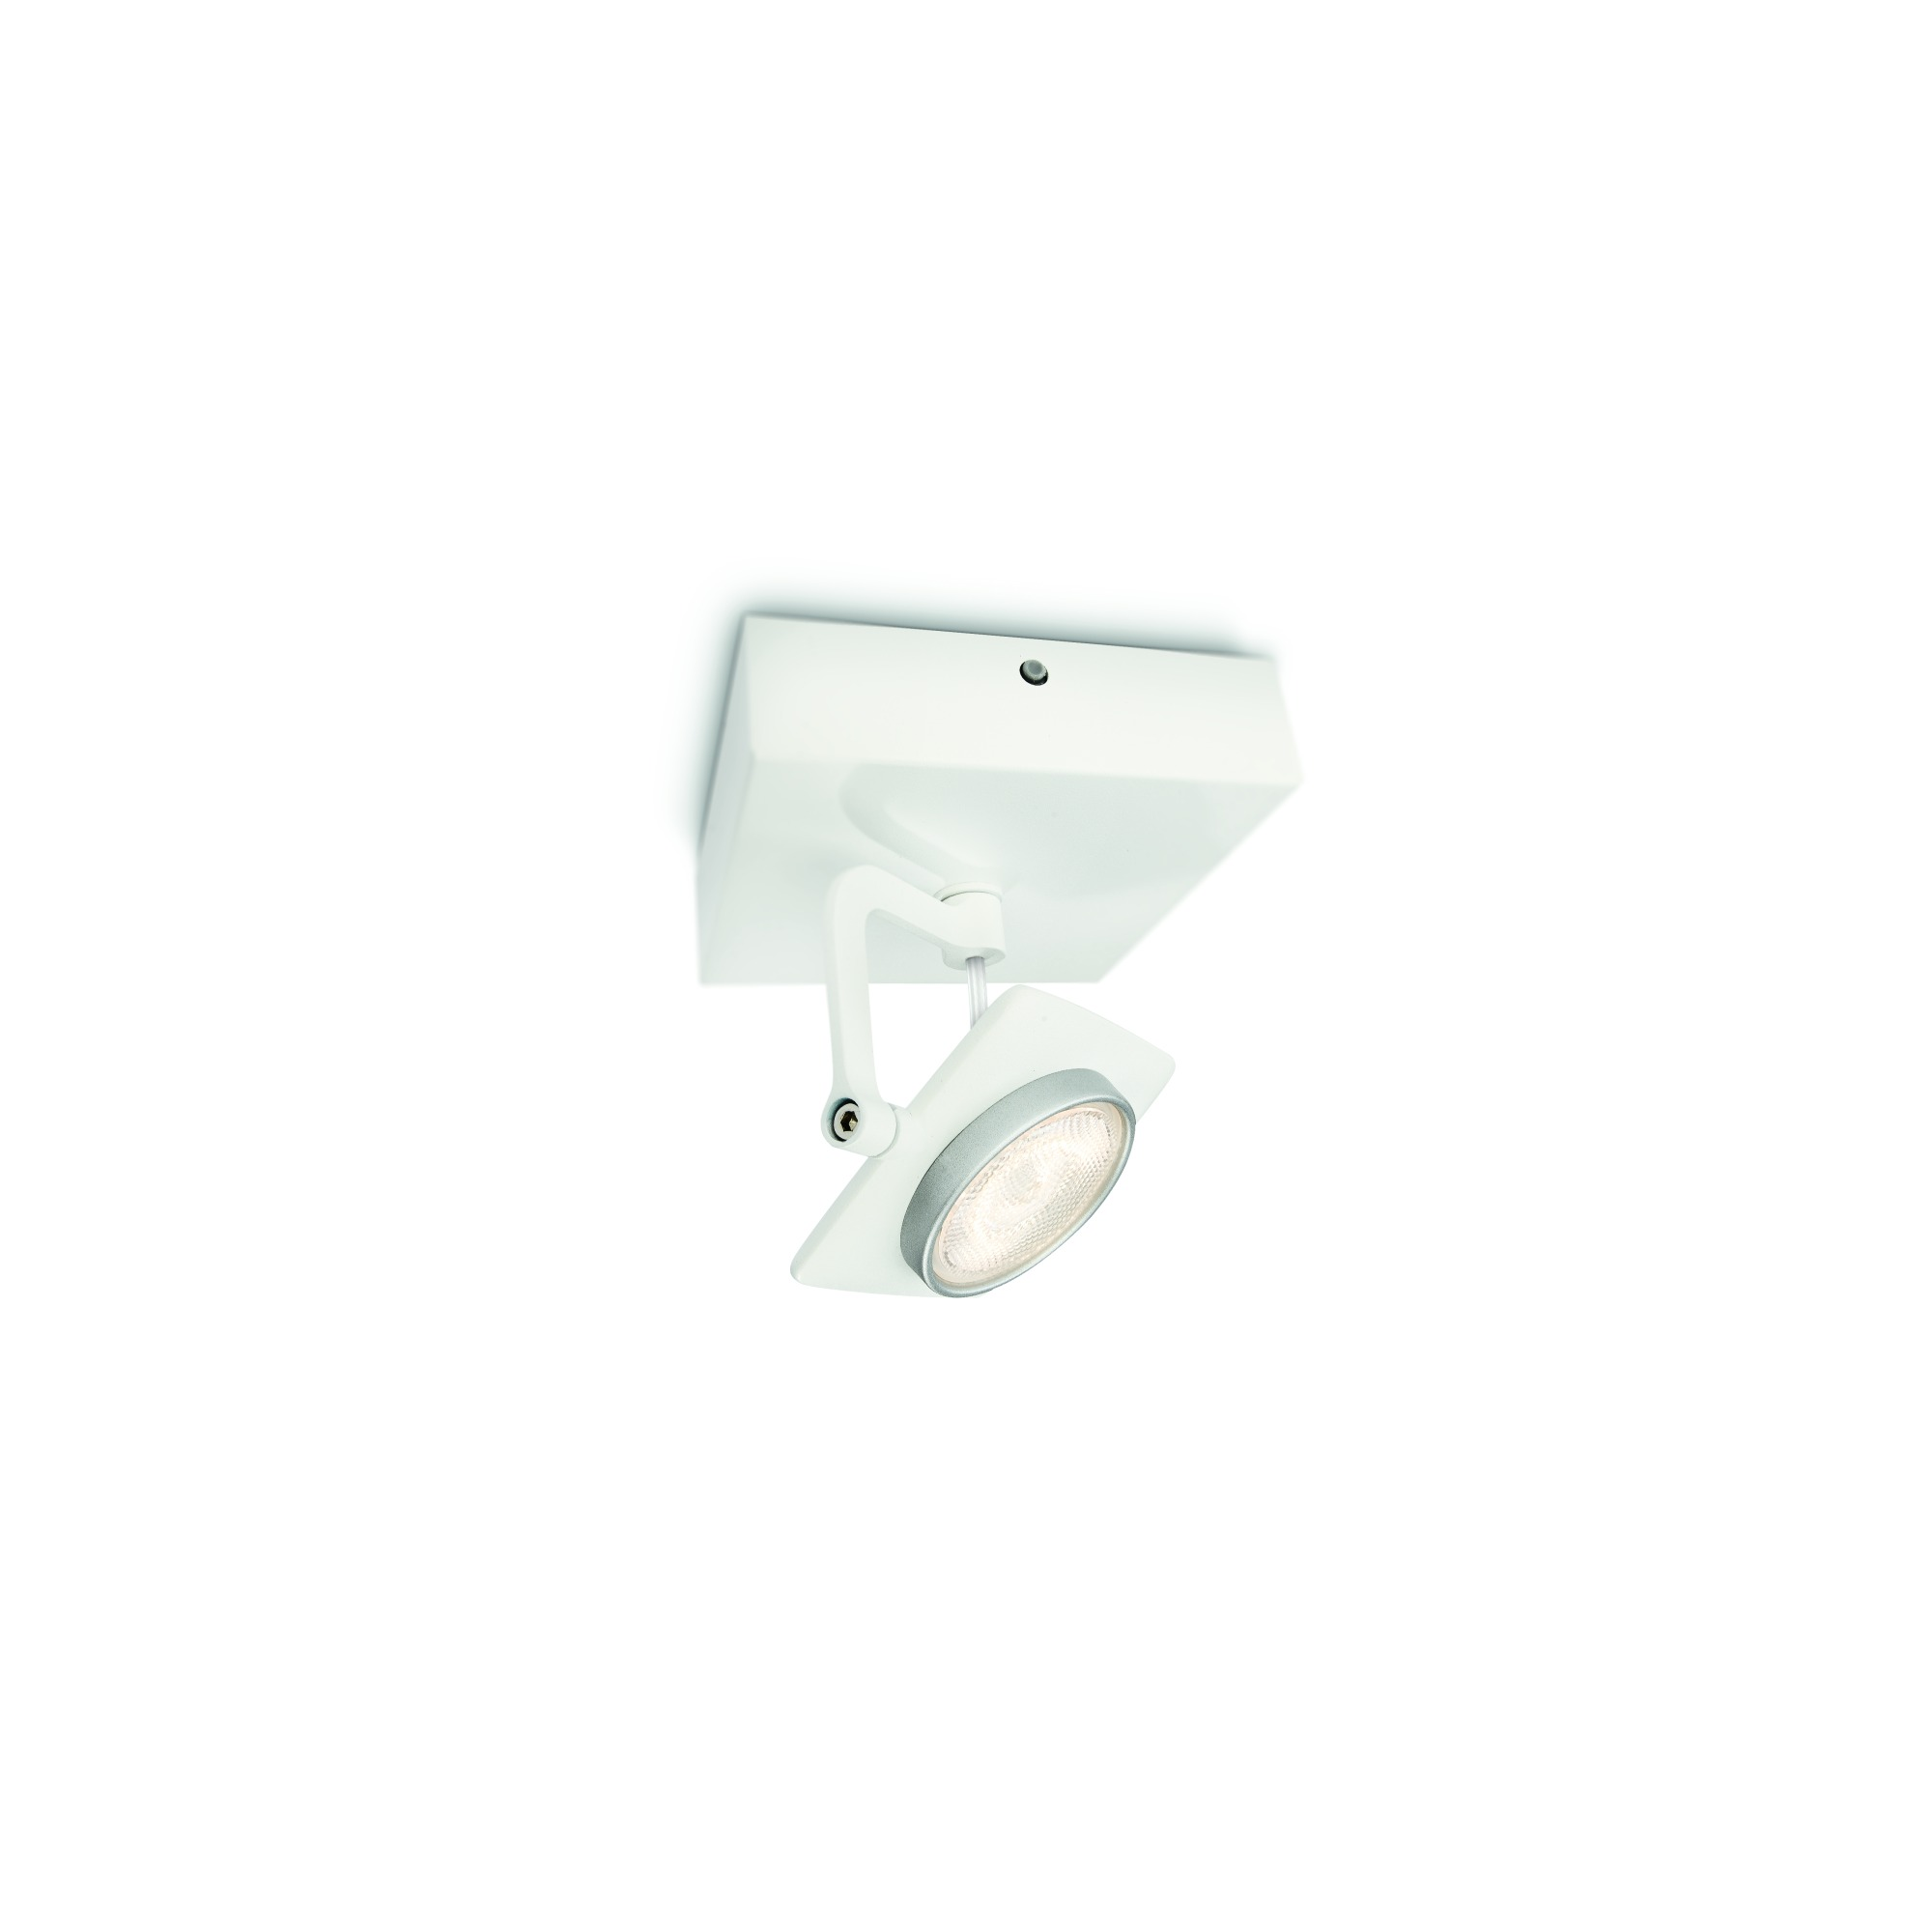 MILLENNIUM LED wandspot MyLiving by Philips 53190-31-16